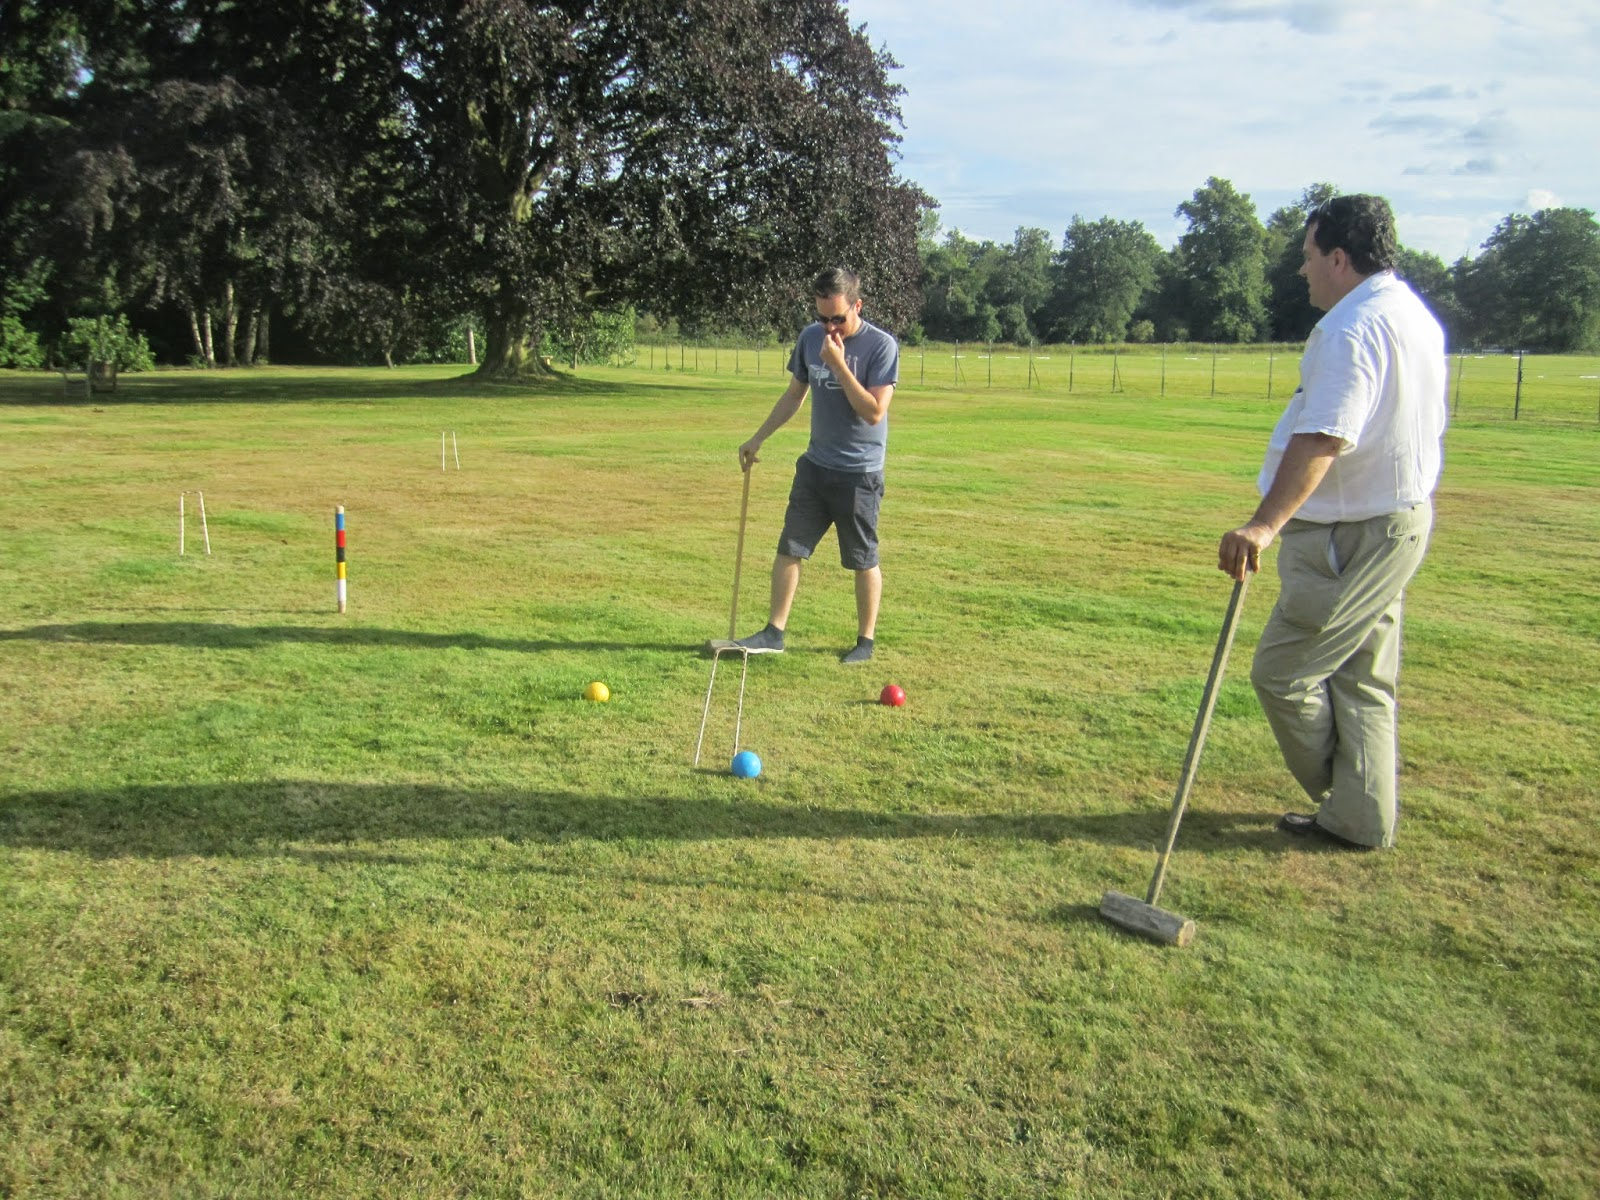 how to hit a croquet ball